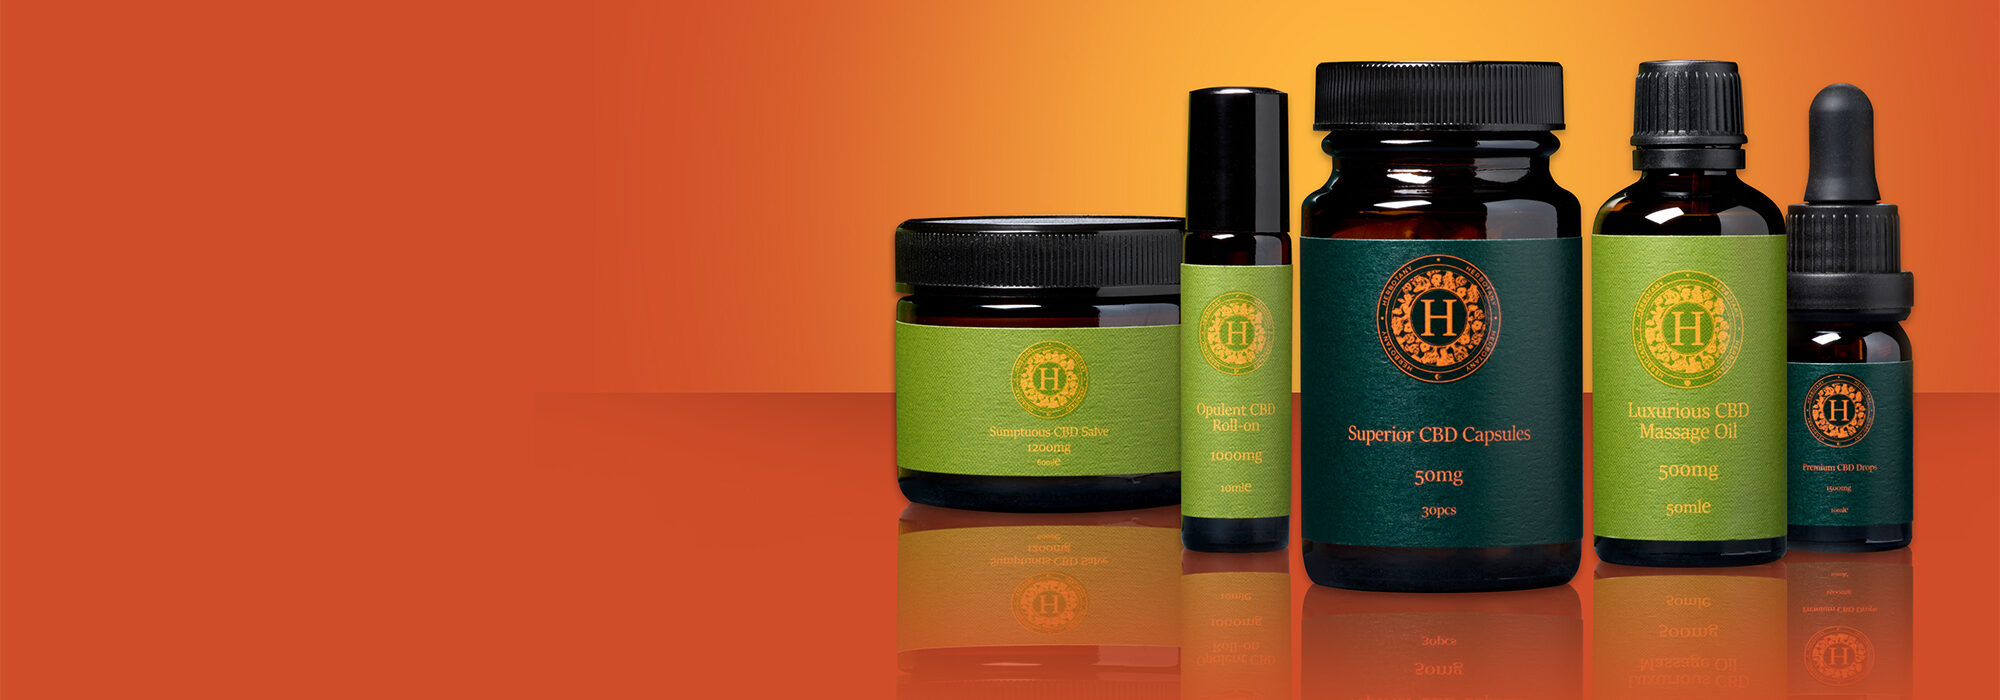 Herbotany Health products